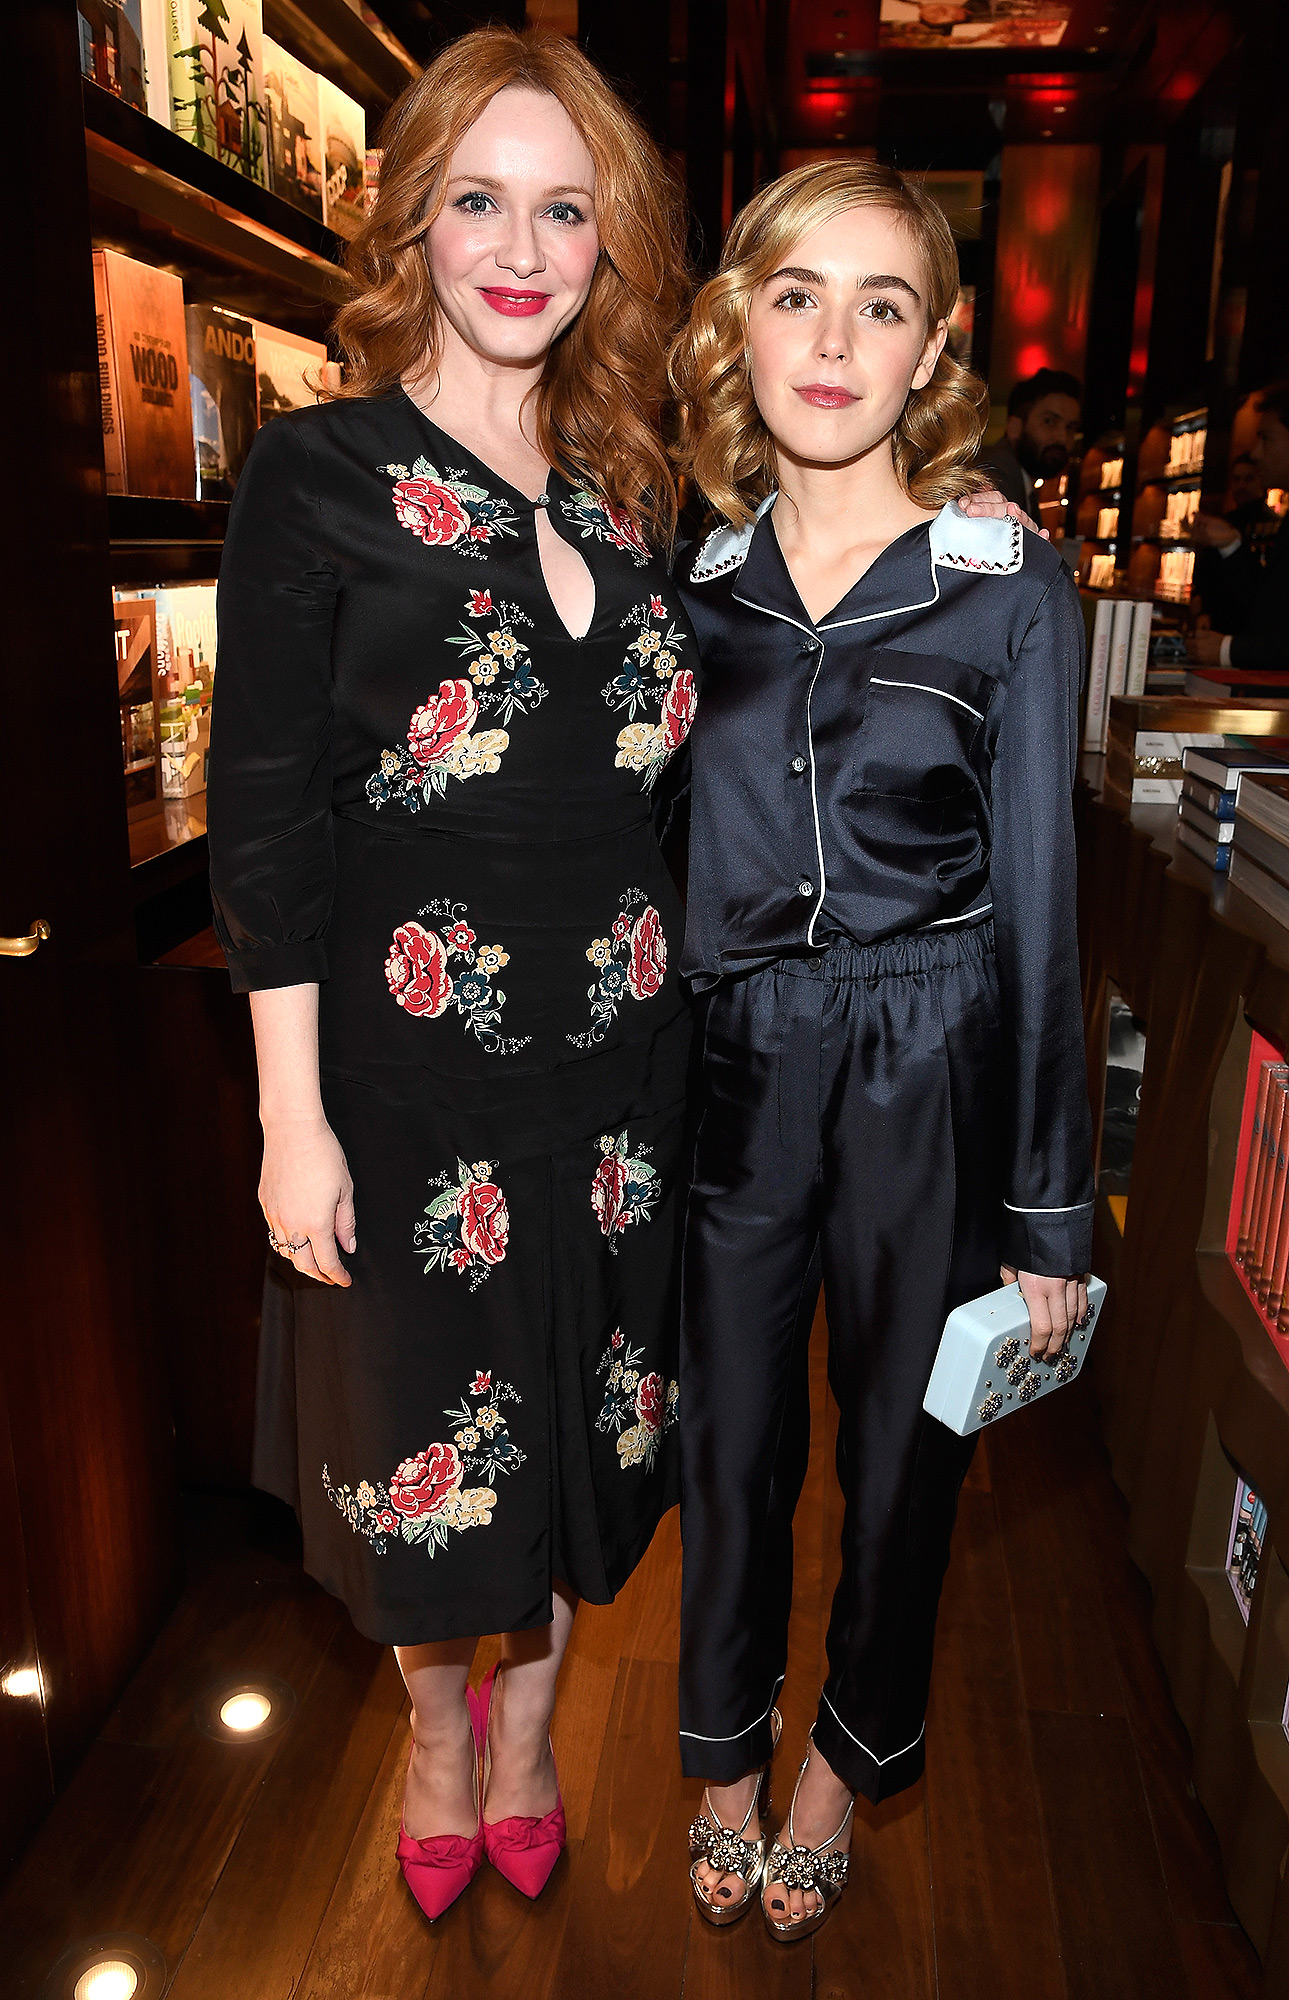 """BEVERLY HILLS, CA - FEBRUARY 23: Actors Christina Hendricks (L) and Kiernan Shipka attend the launch for Matthew Weiner's Book """"Mad Men"""" at TASCHEN Store Beverly Hills on February 23, 2017 in Beverly Hills, California. (Photo by Frazer Harrison/Getty Images)"""